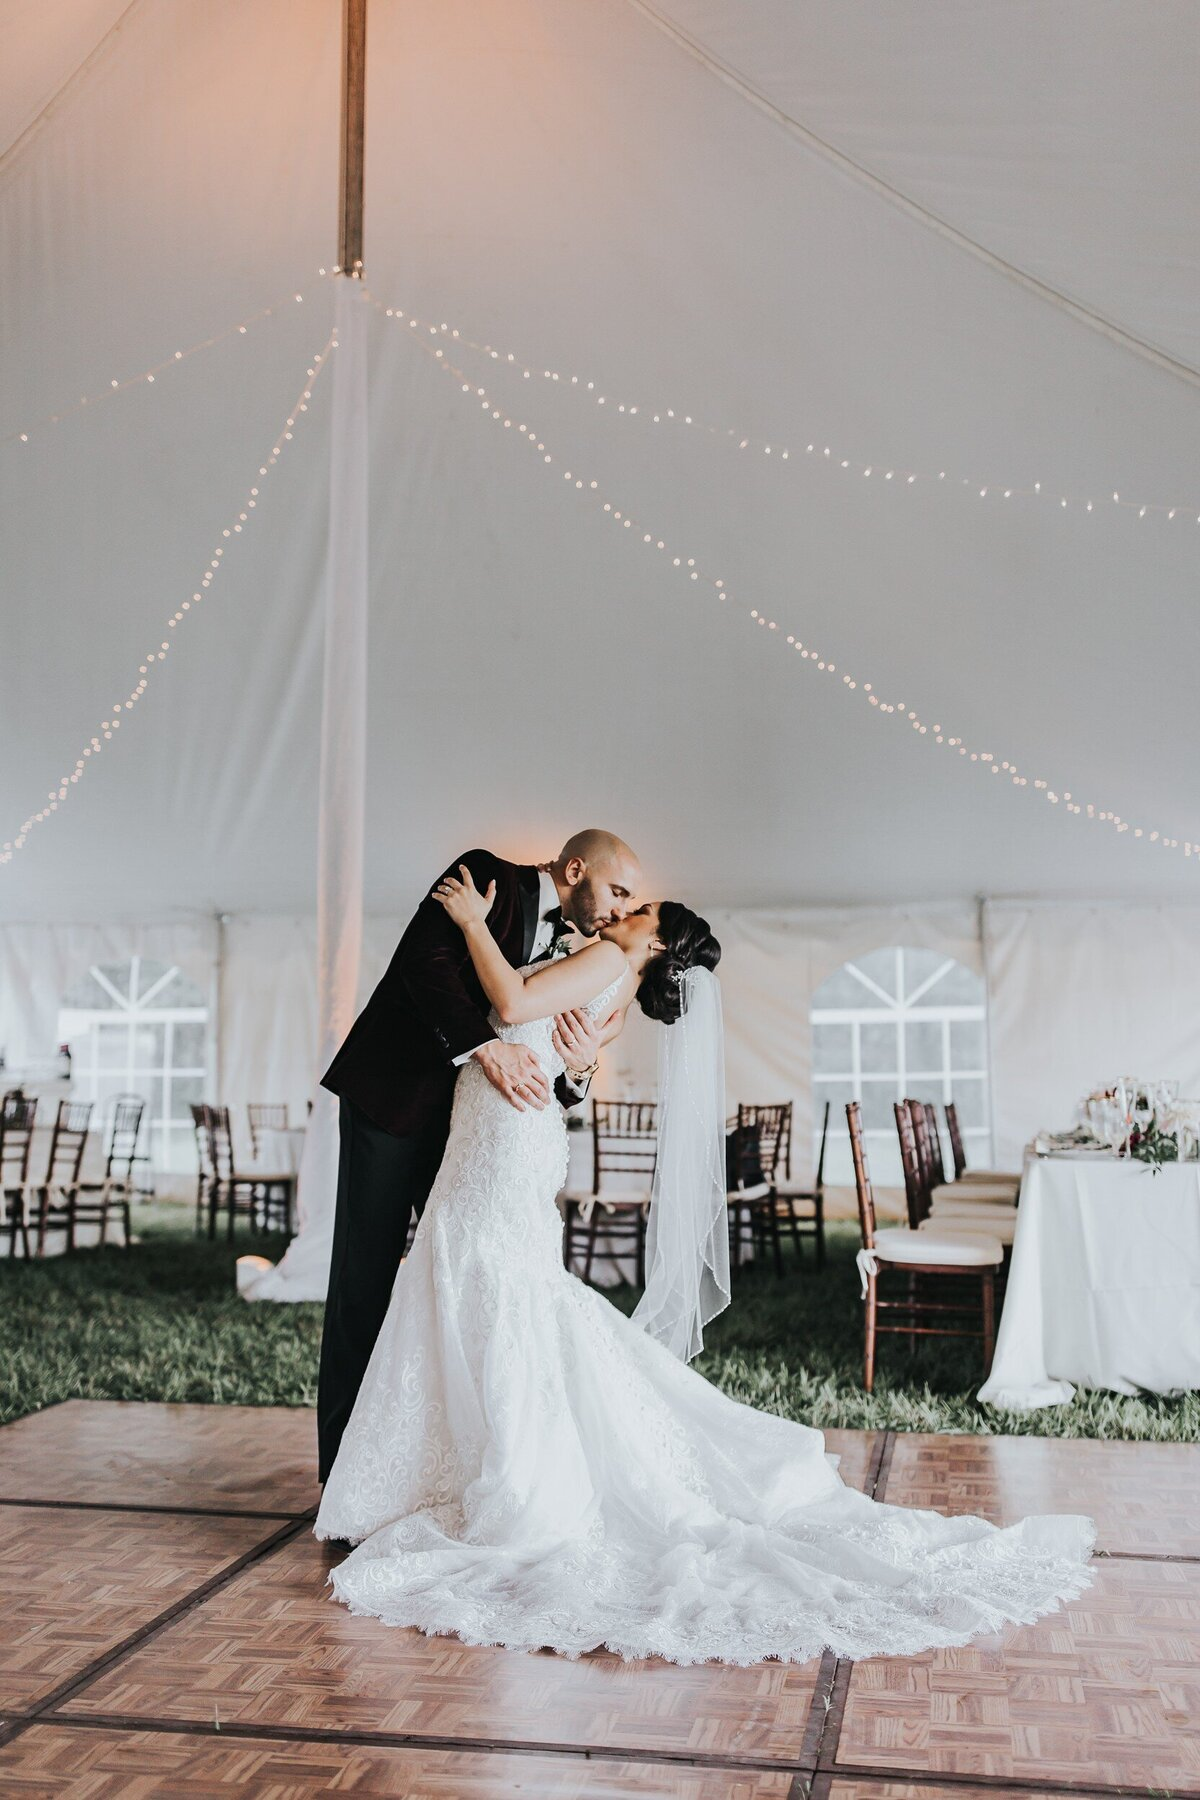 Soirées and Revelry Wedding Event Planning Coordination Design Designer Planner Coordinator New England East Coast Destination Luxury High End Jennifer Tansley19